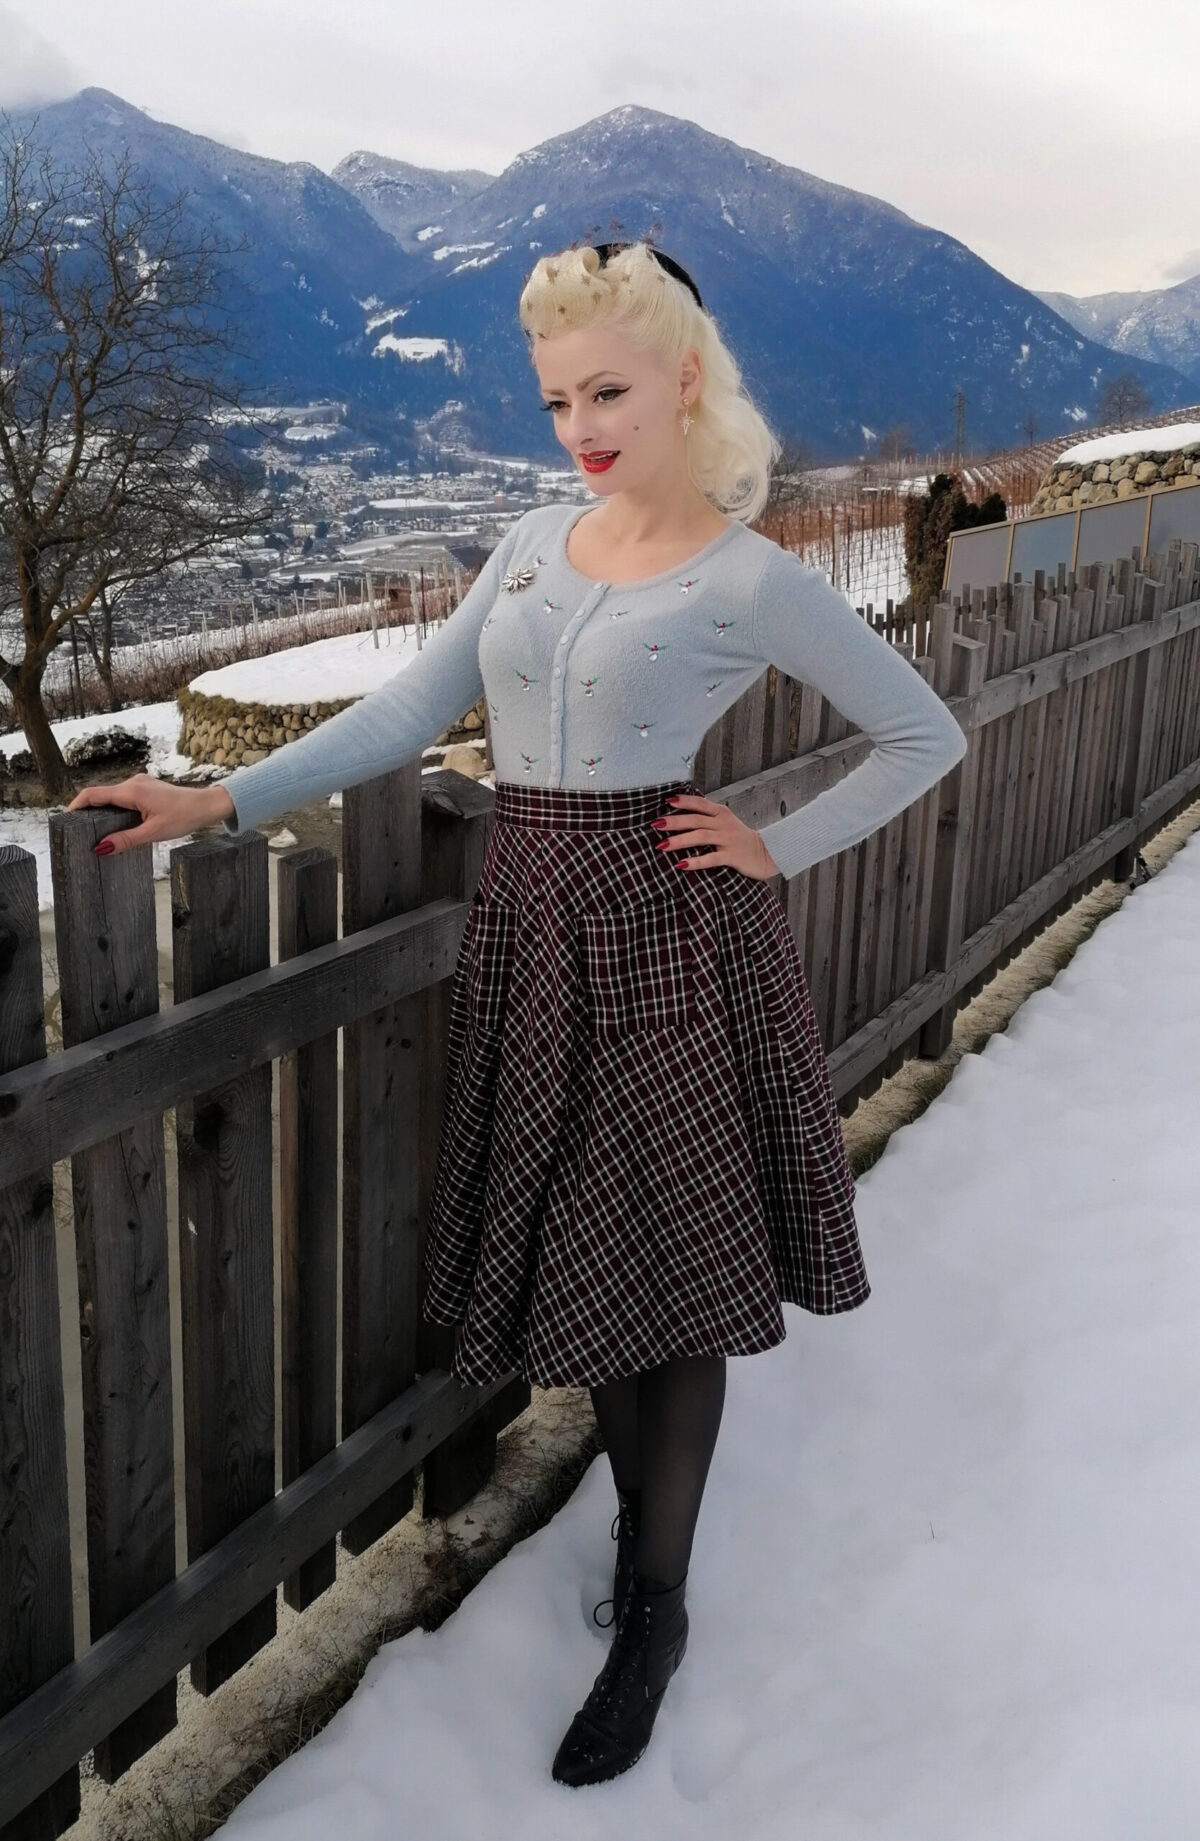 Vintage Stil im Winter